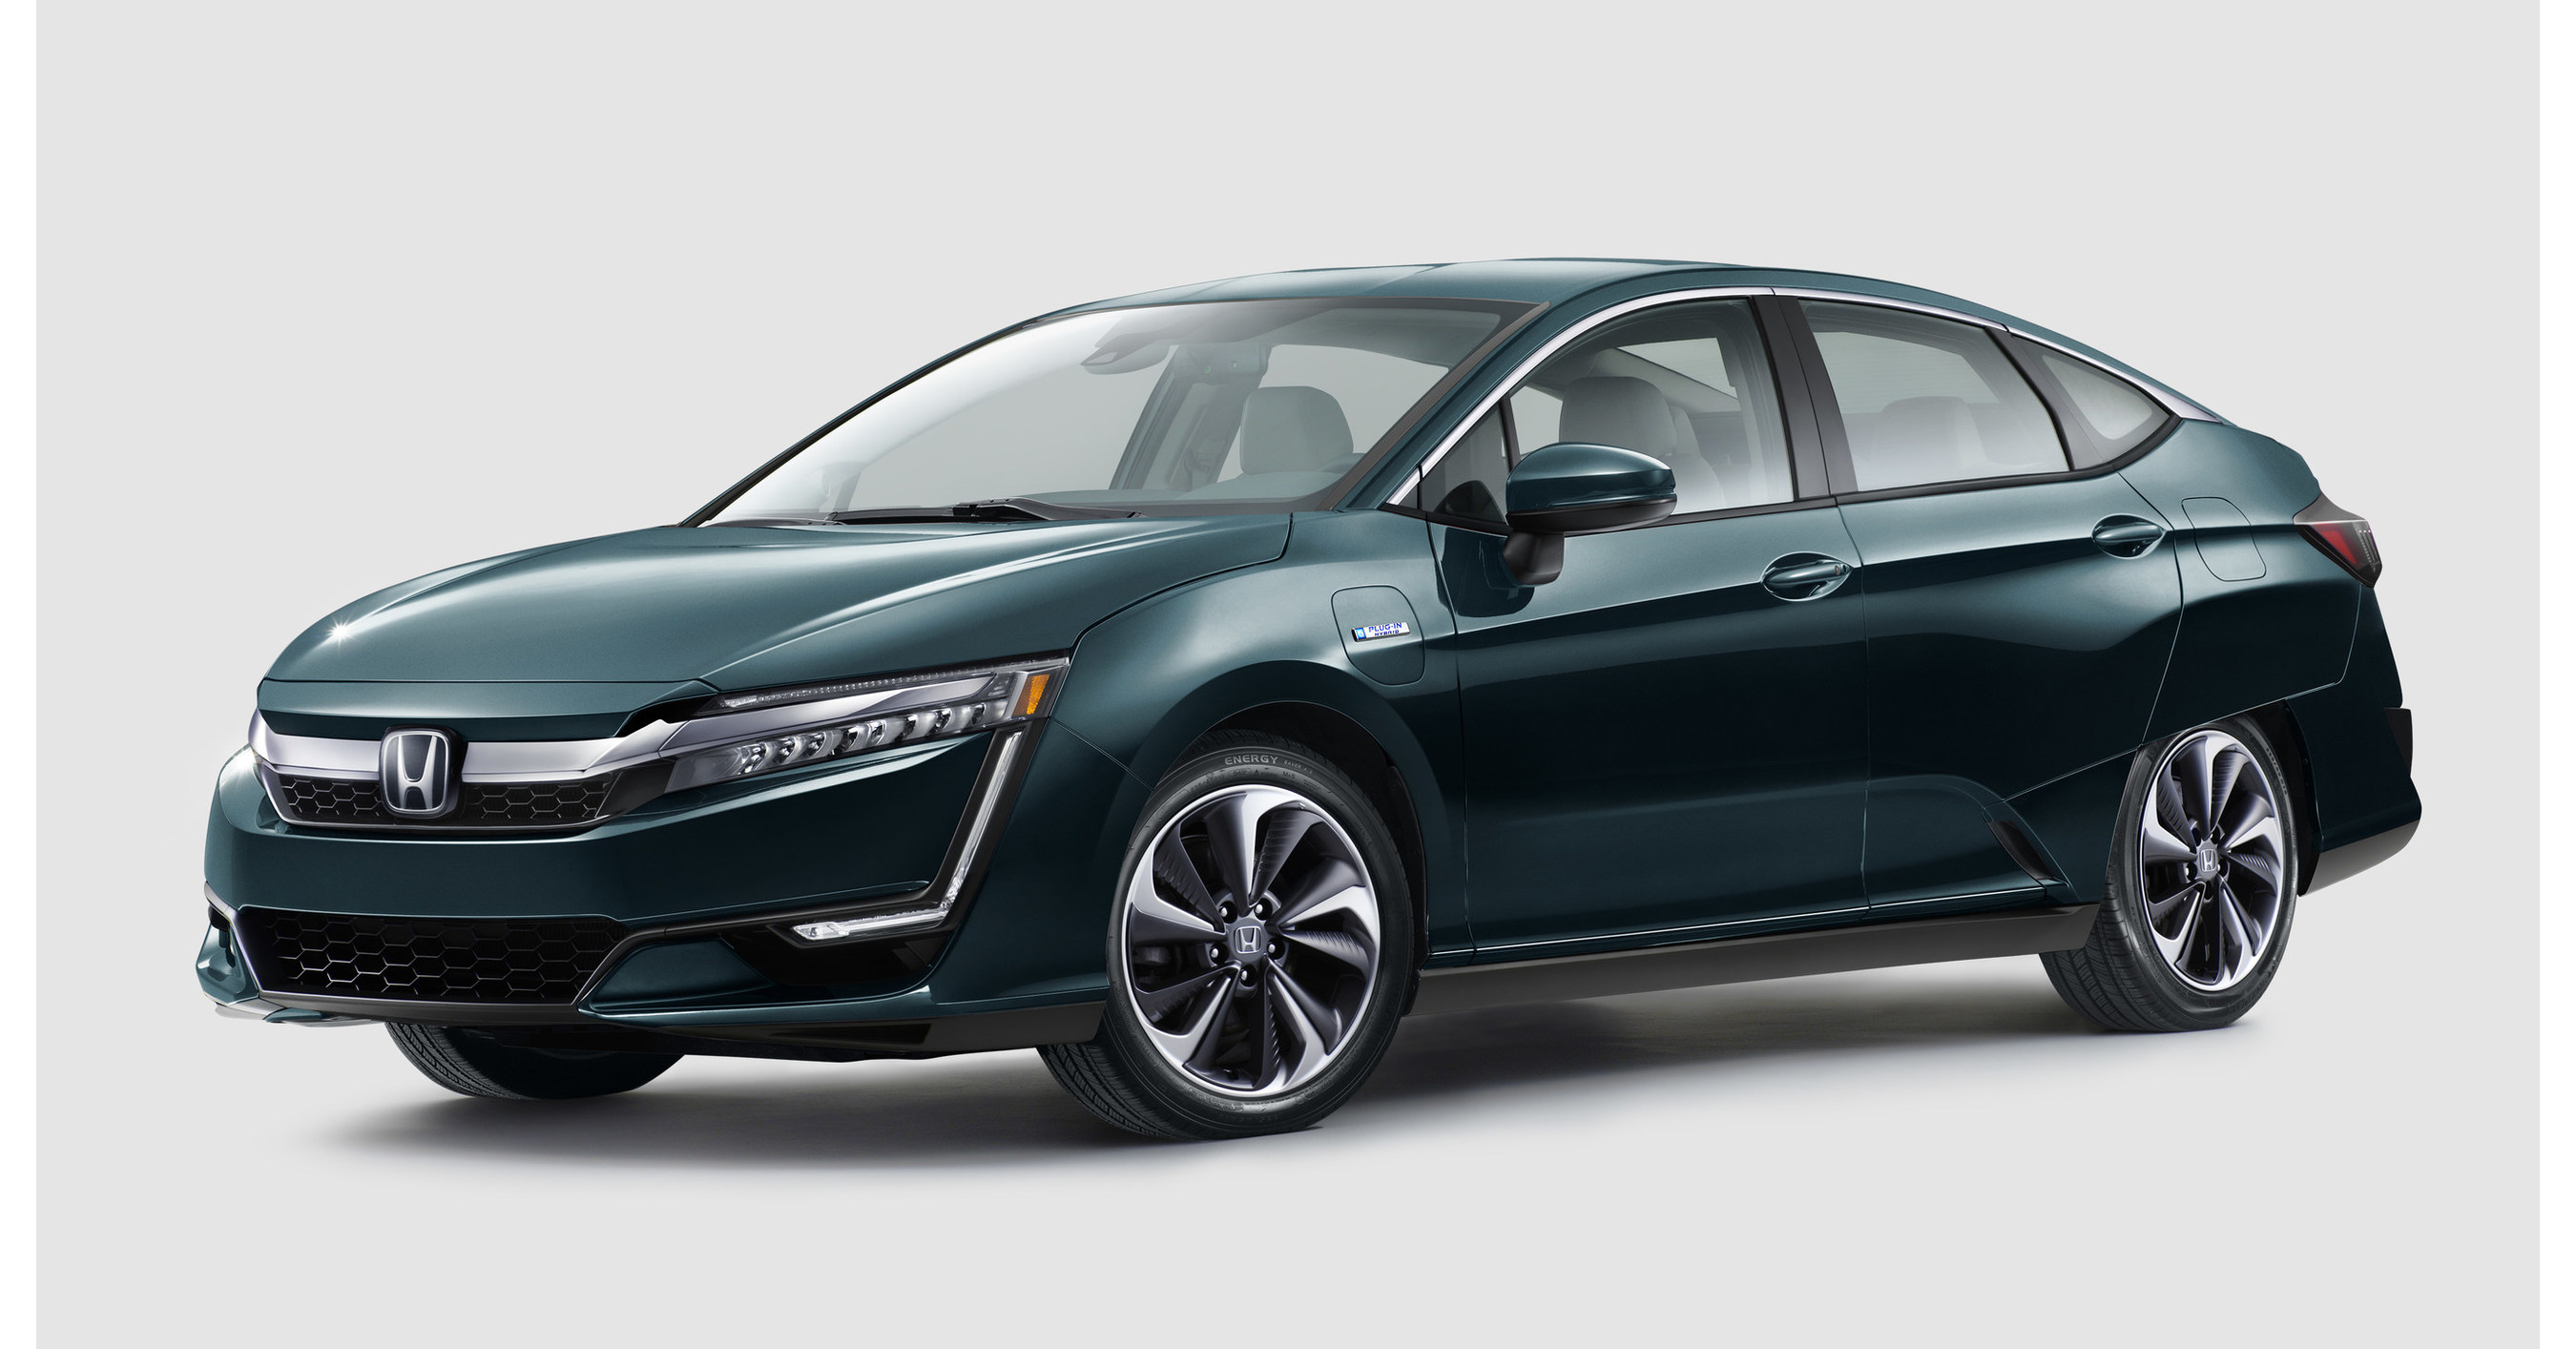 Honda electrified clarity plug in hybrid and clarity electric unveiled at 2017 new york